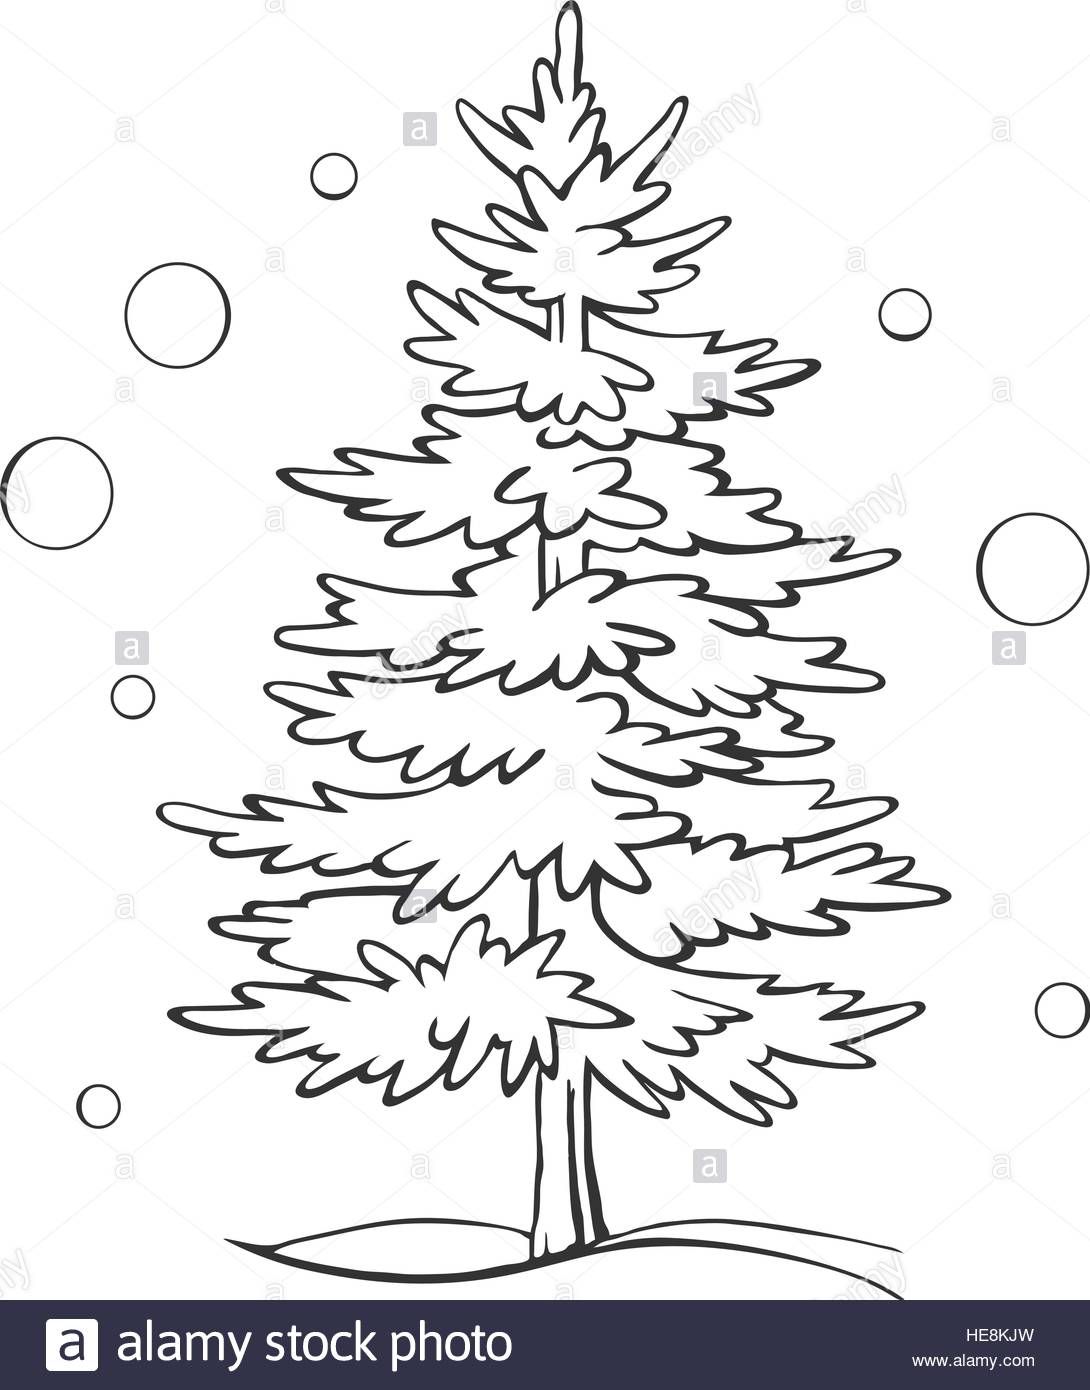 1090x1390 Christmas Tree Sketch Symbol Vector Xmas Winter Stock Vector Art